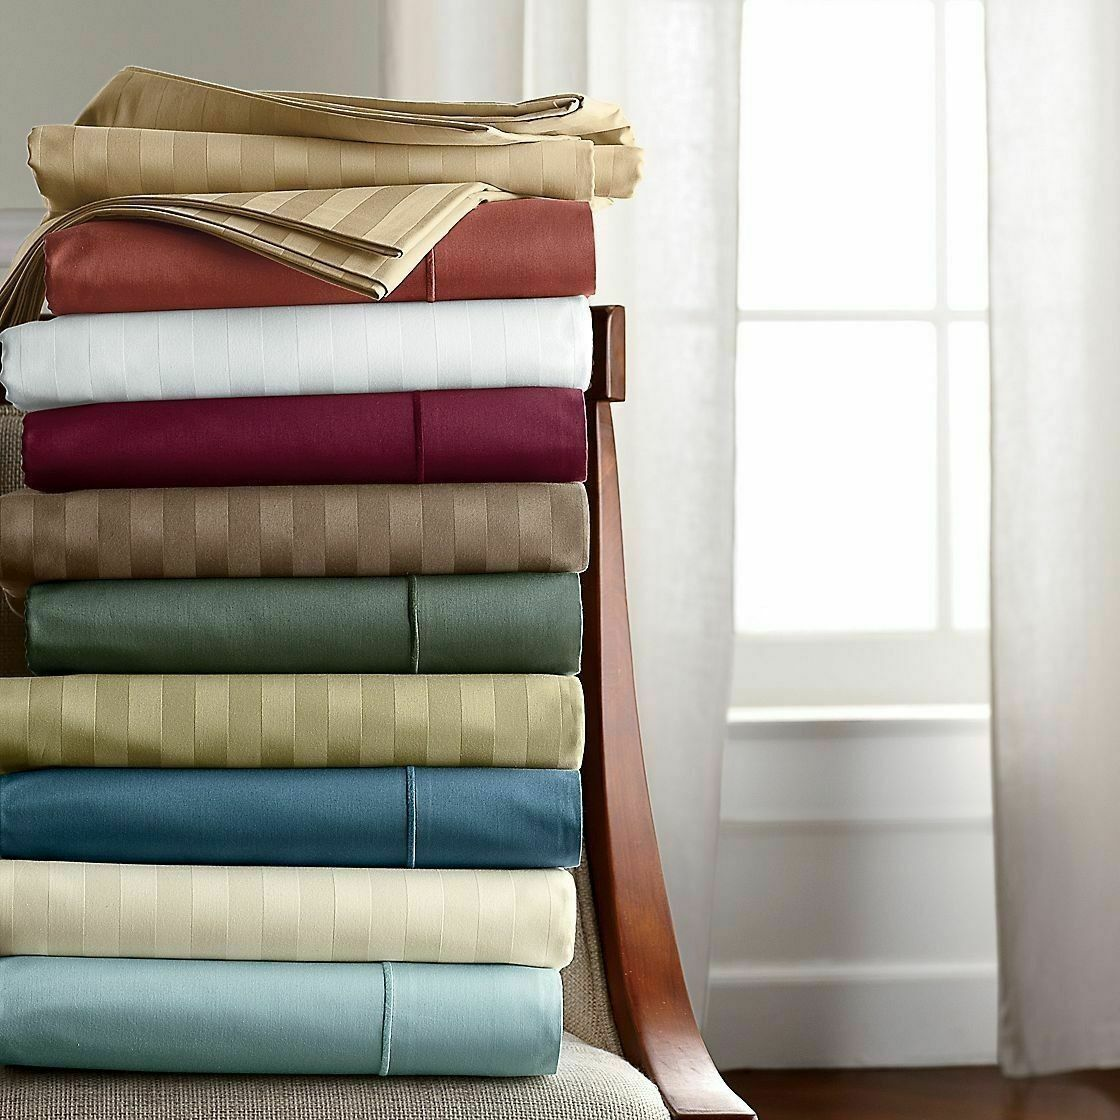 Full XL Size Superb 1 PC Bed Skirt Egyptian Cotton 1000 TC Multi colors